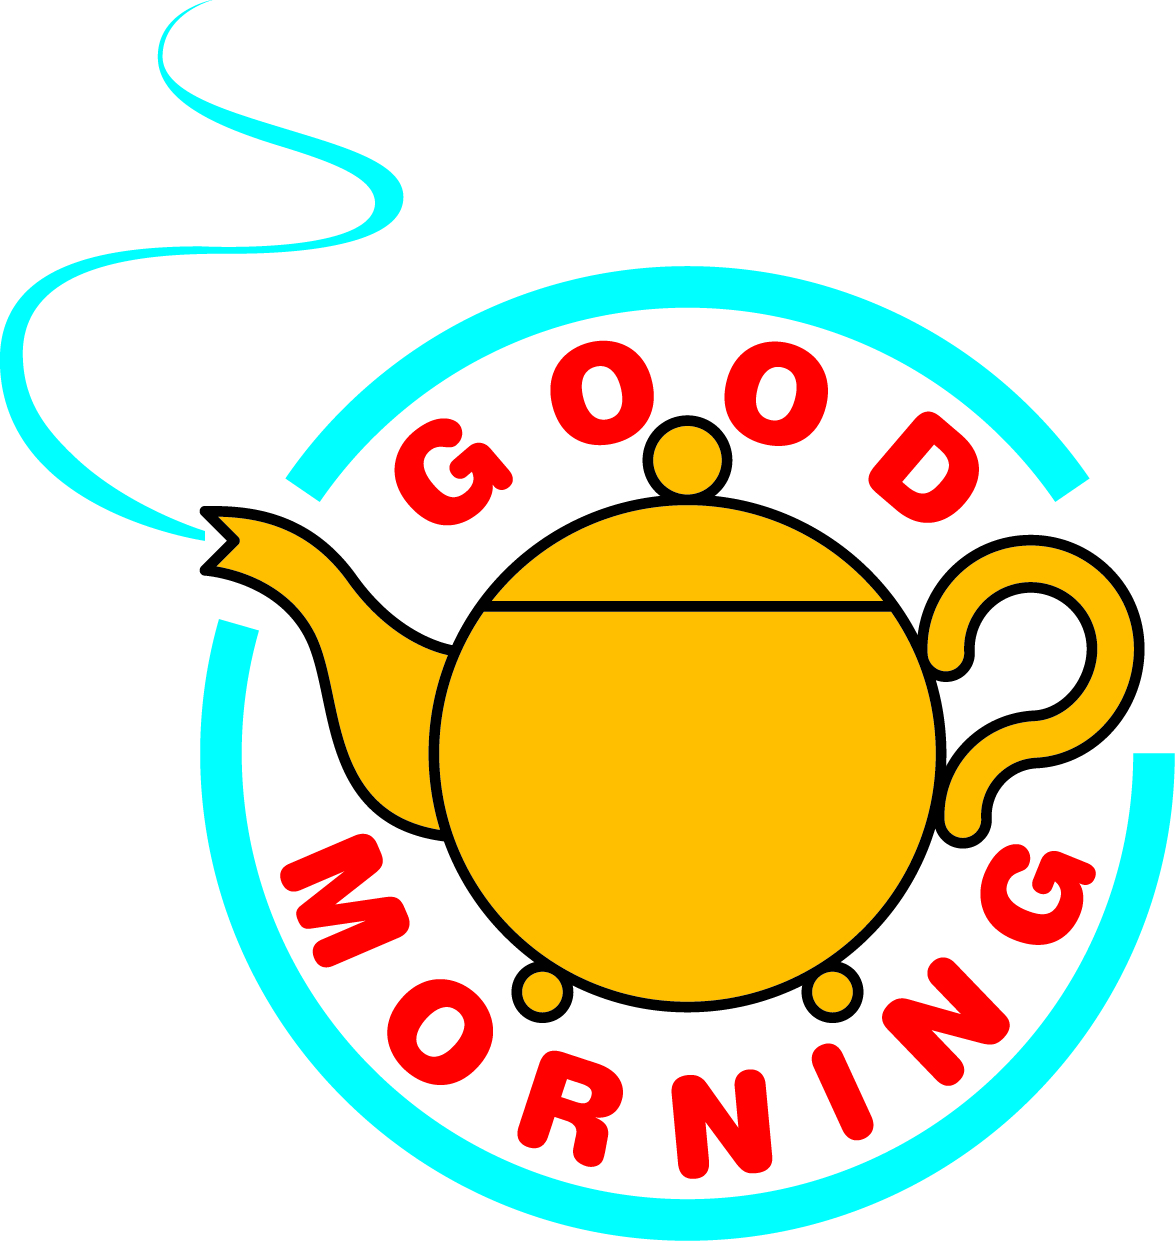 Good Morning Clip Art - Clipart library-Good Morning Clip Art - Clipart library-11